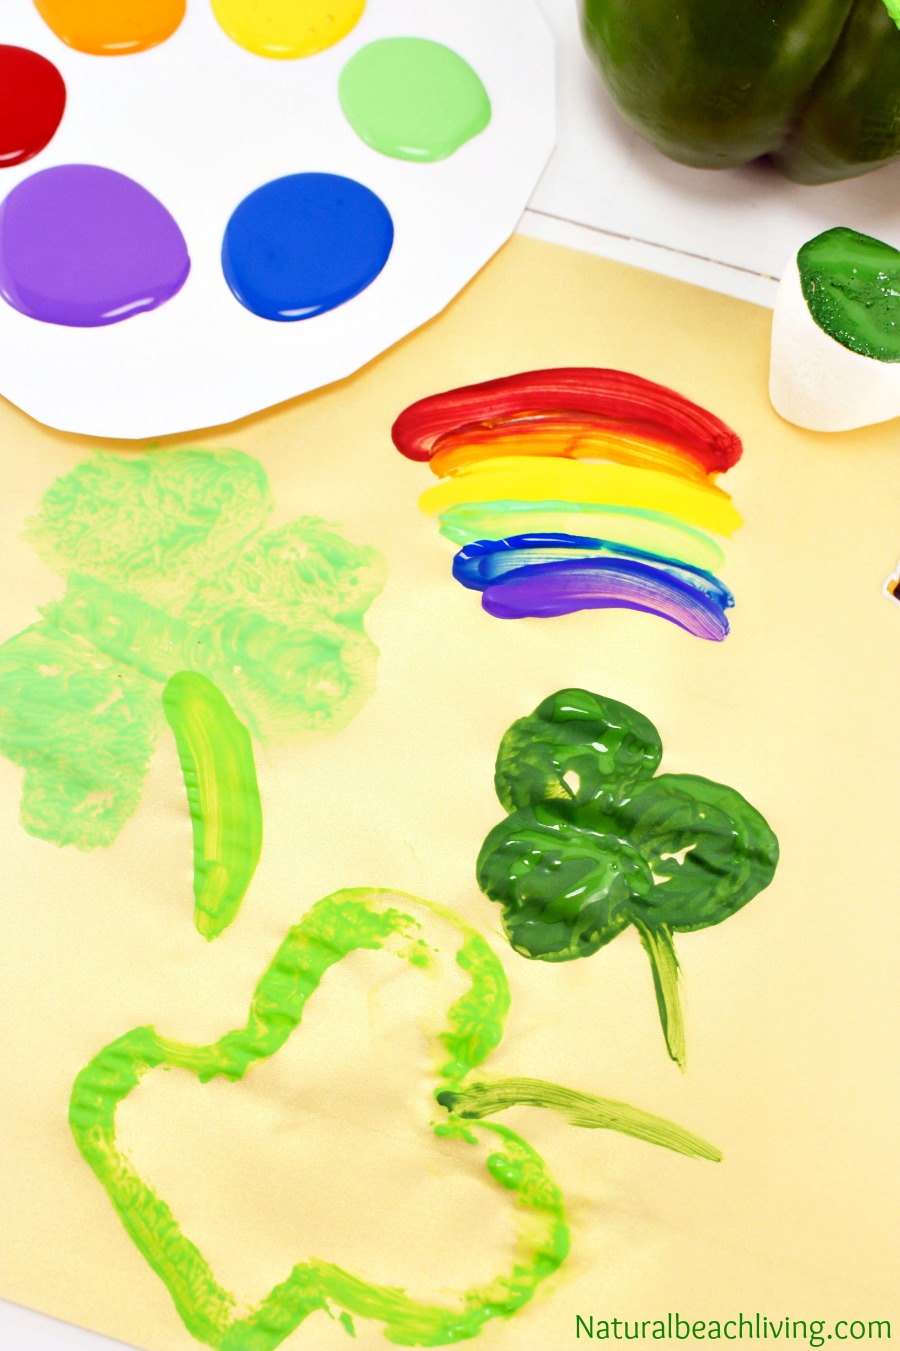 St. Patrick's Day Crafts, Marshmallow Stamping, Rainbow crafts for kids